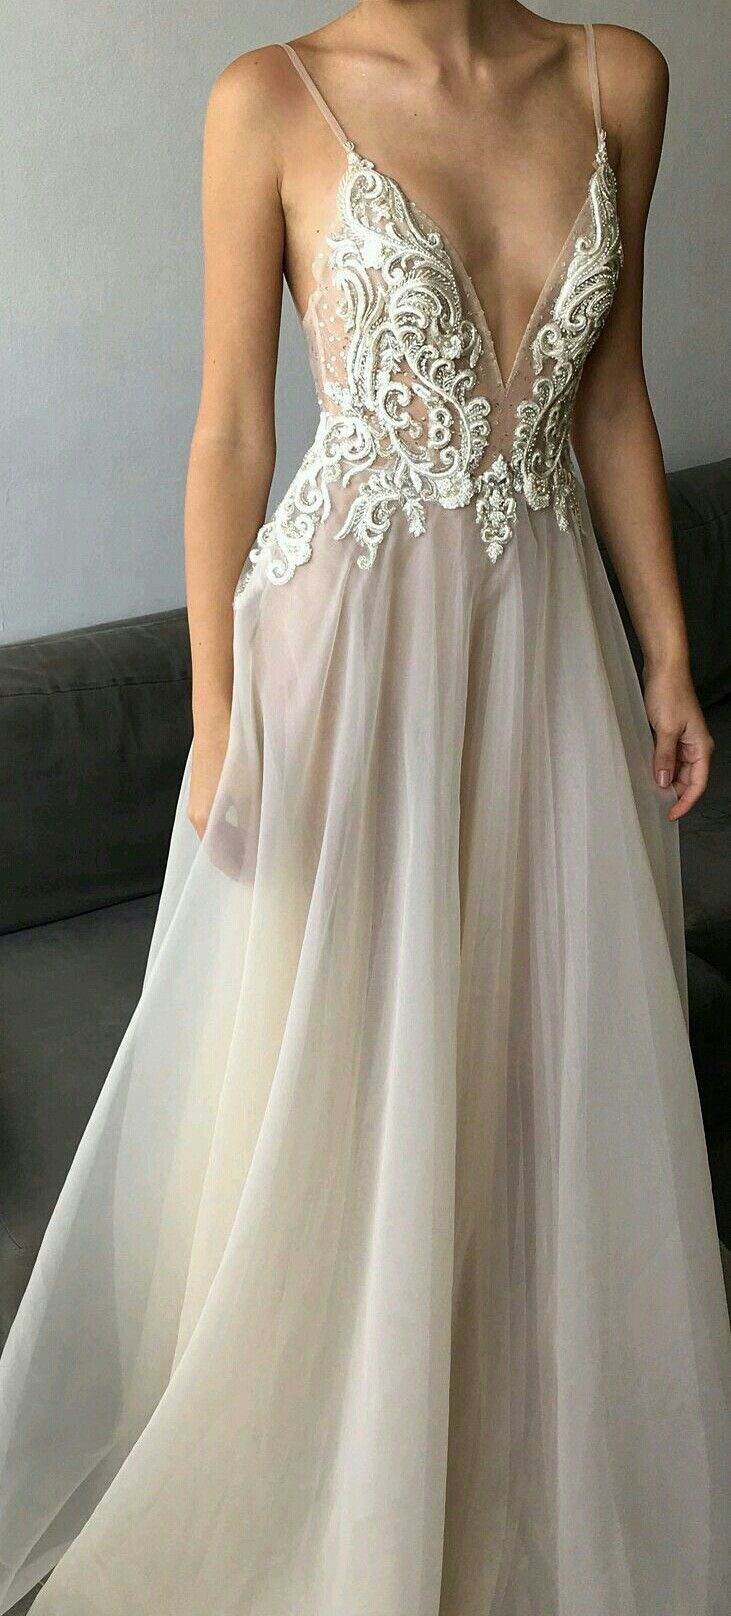 Pin by brittany larsen on dream dress pinterest google prom and